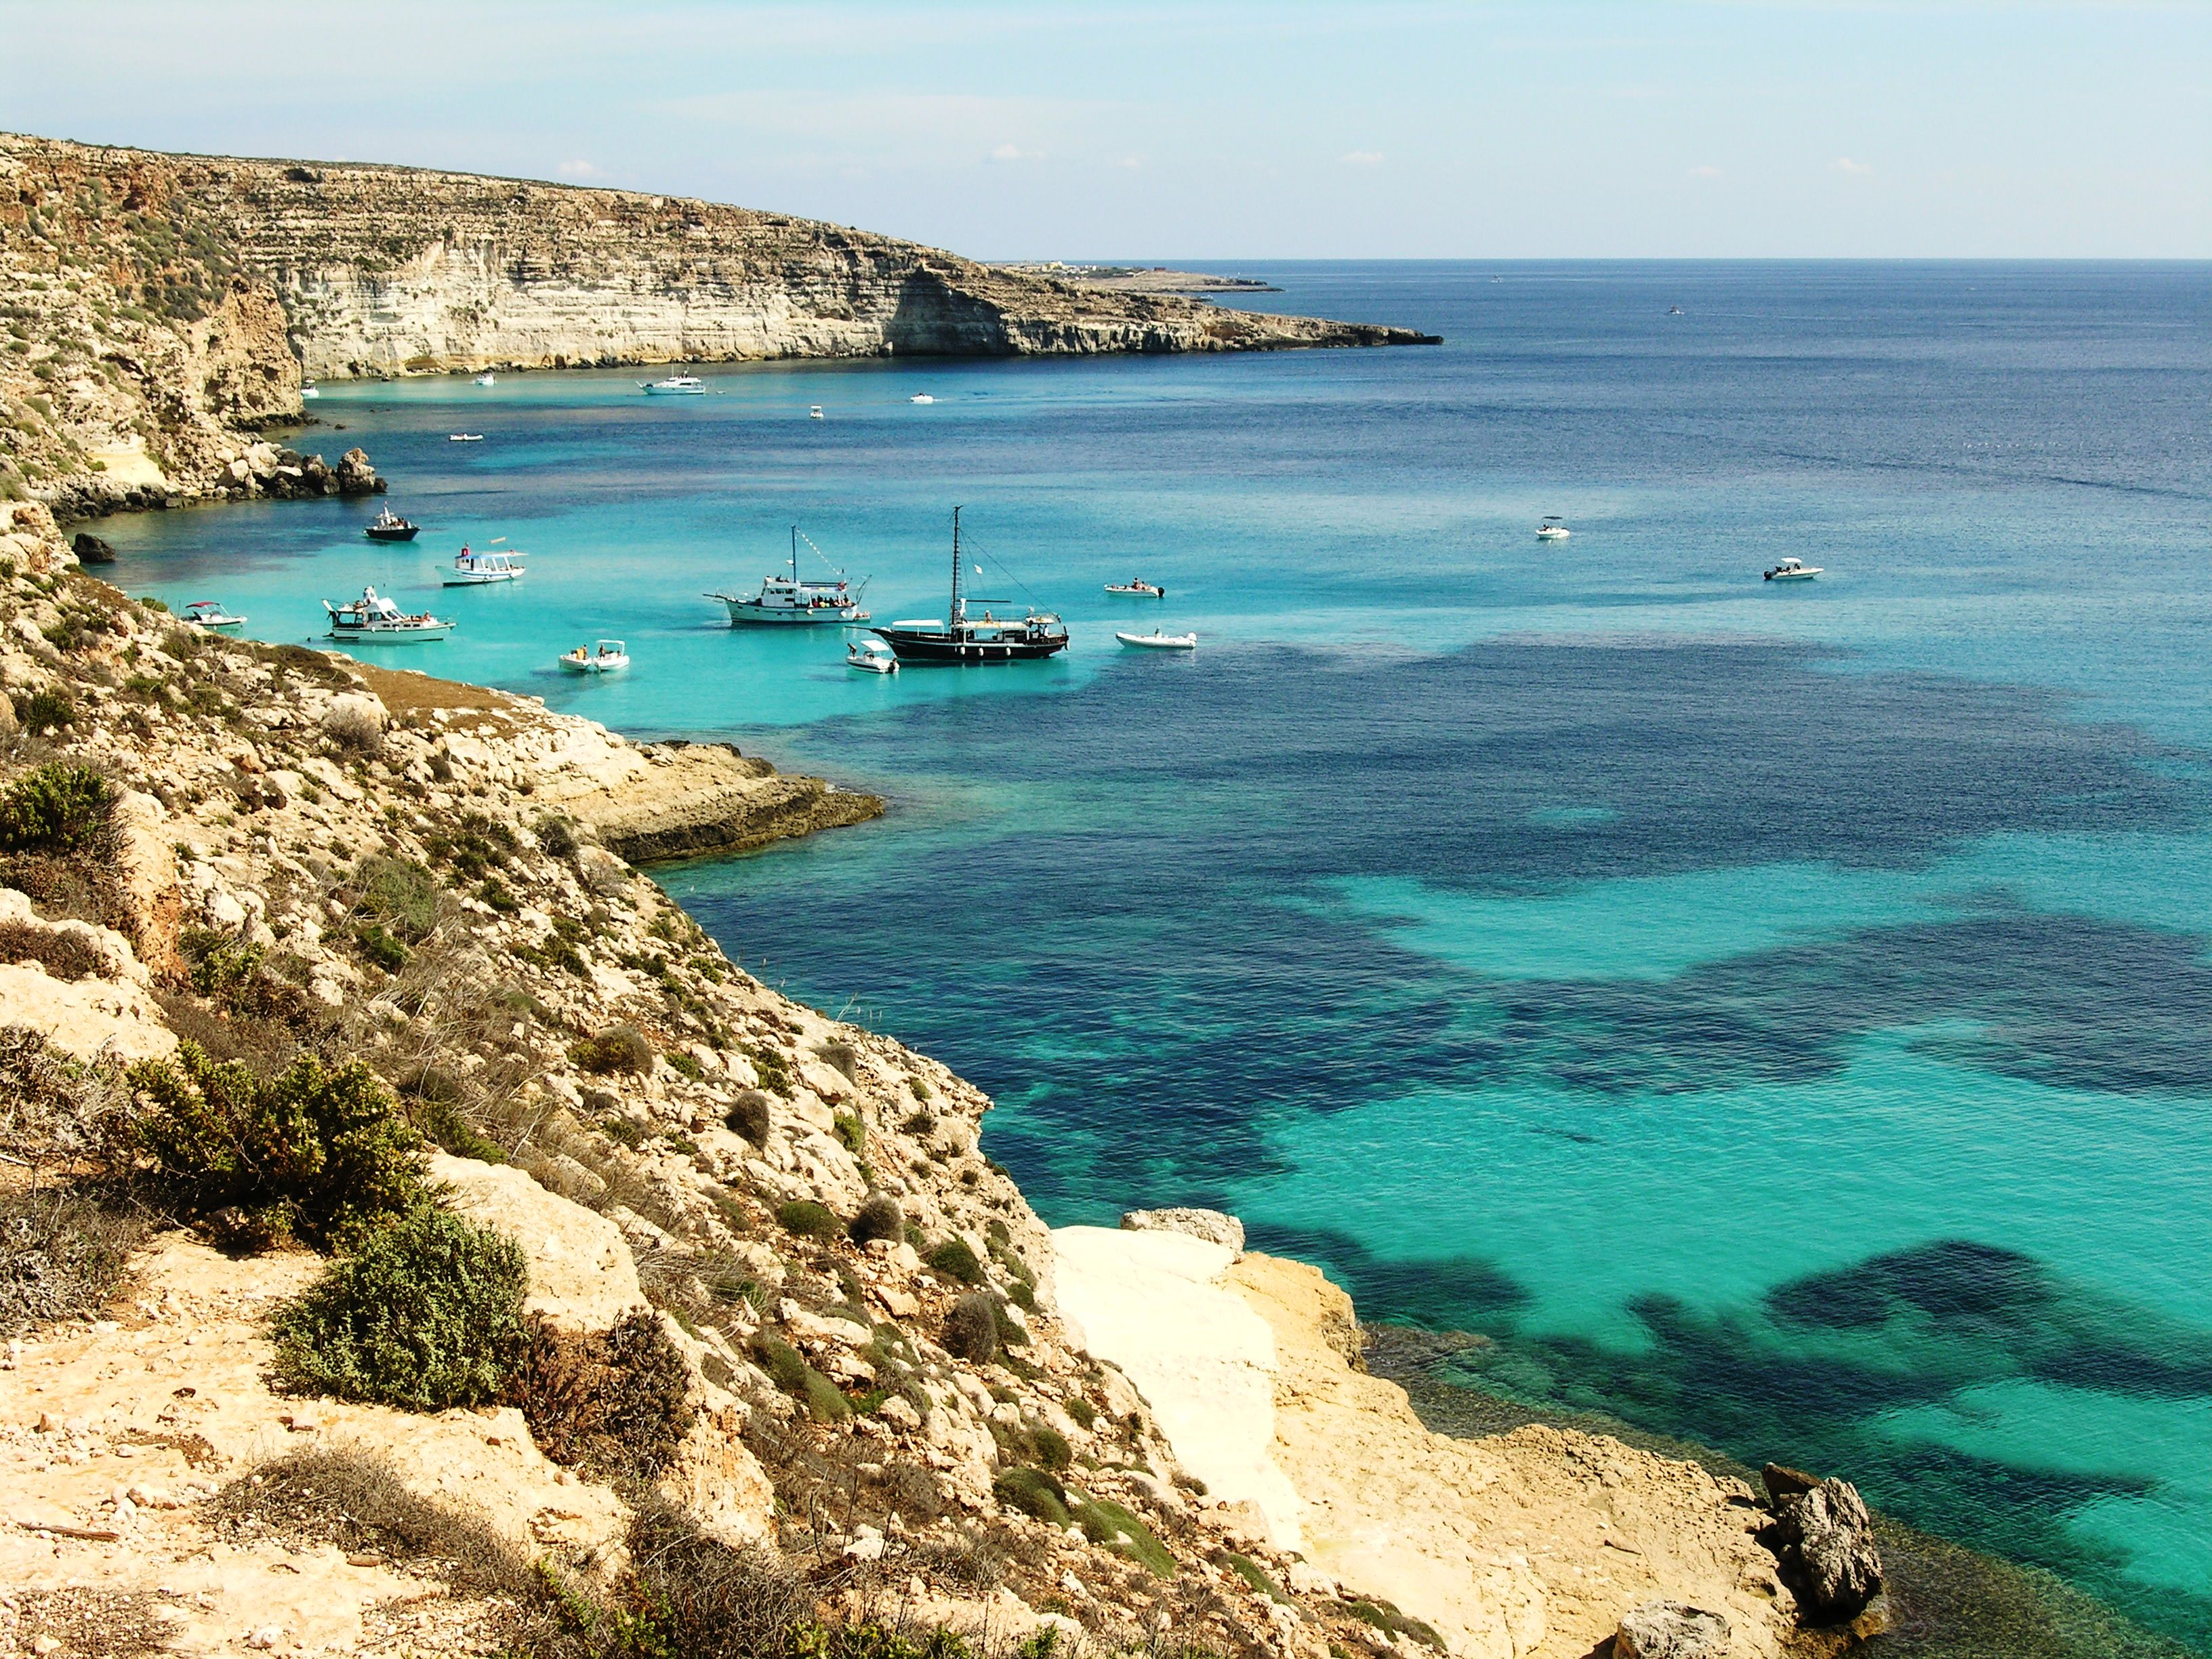 Boats off the shore of Lampedusa, photo courtesy of Wikimedia Commons